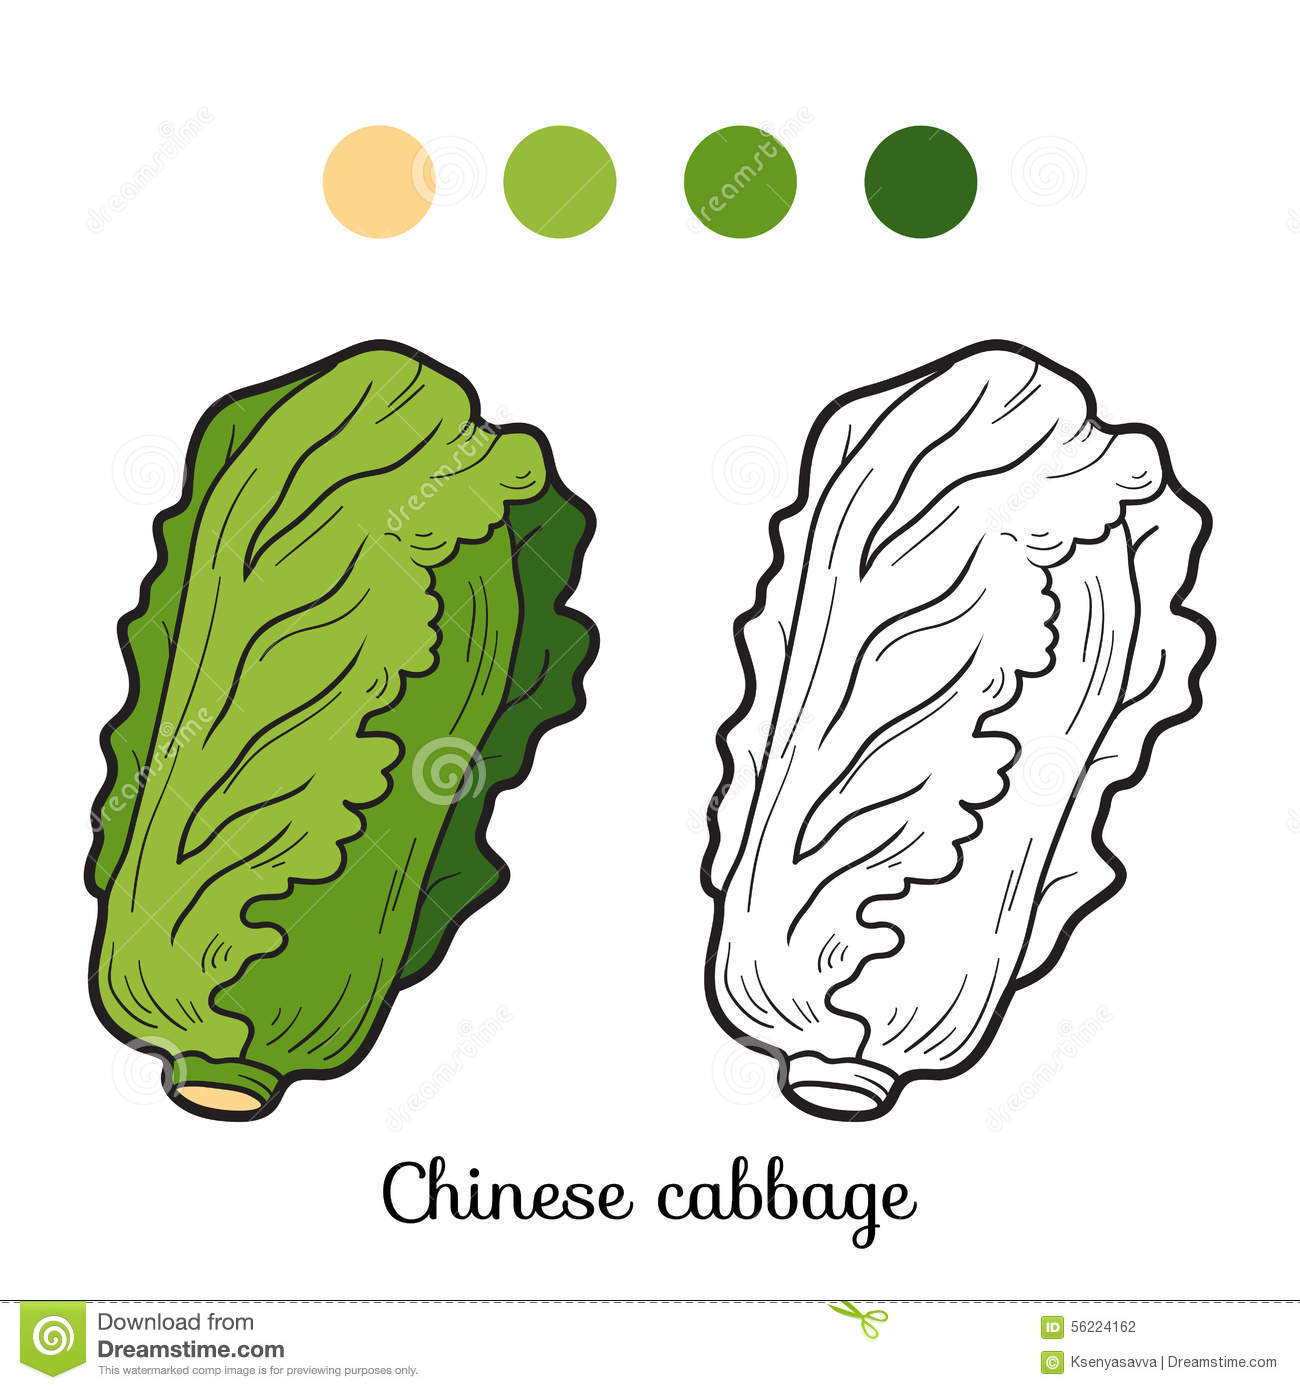 Coloring book pictures of vegetables - Coloring Book Fruits And Vegetables Chinese Cabbage Stock Photography